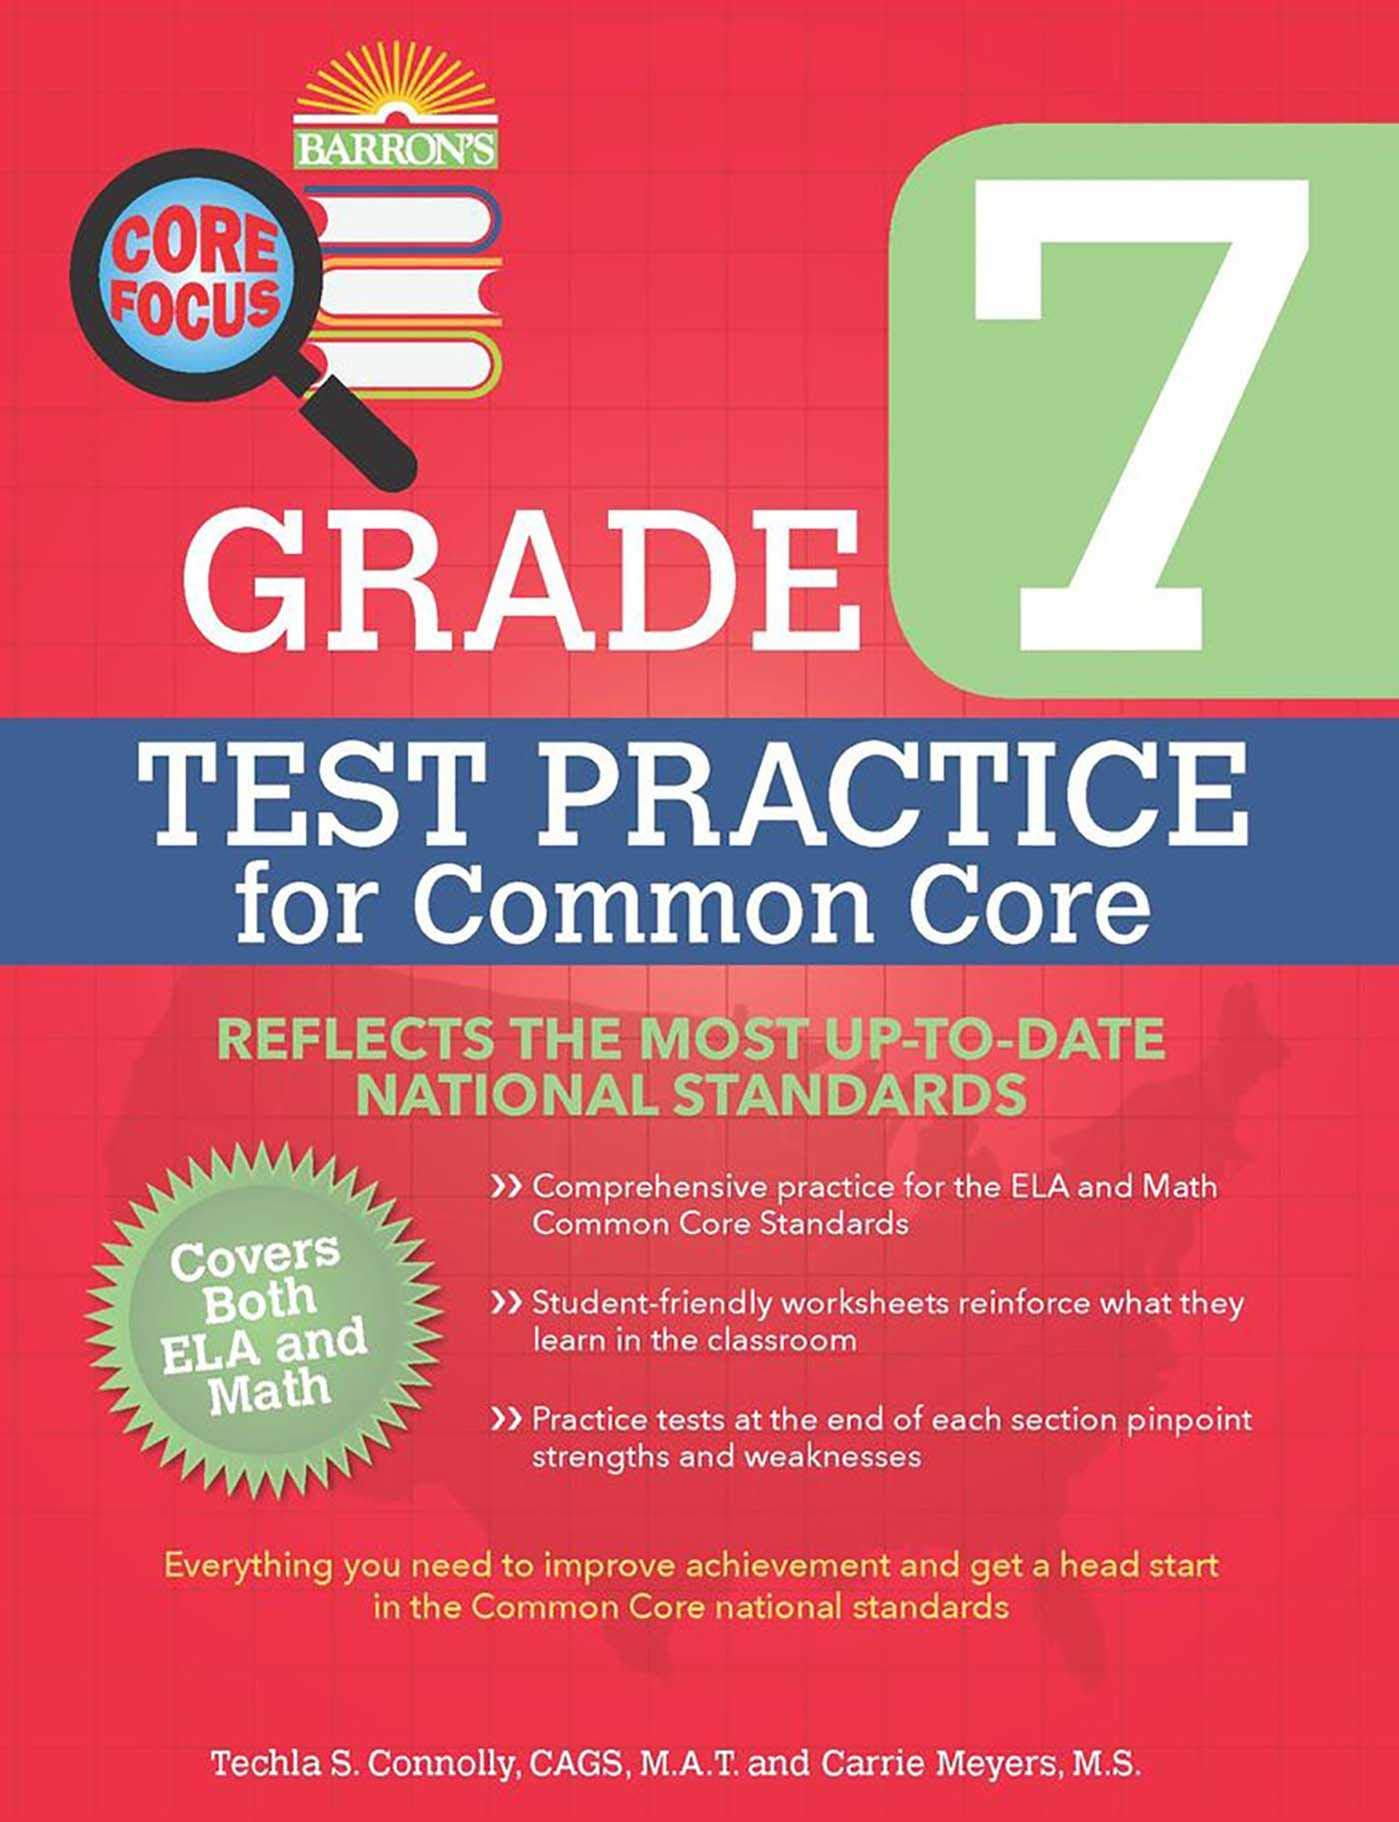 Barron's Core Focus: Grade 7 Test Practice for Common Core by Barron s Educational Series